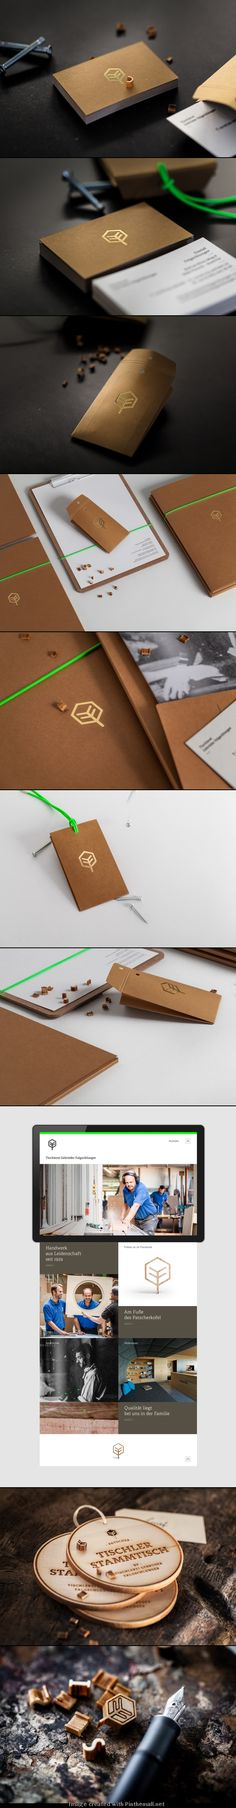 Corporate design branding graphic foil copper bronze metallic business card logo letter label tag wood accent color minimal